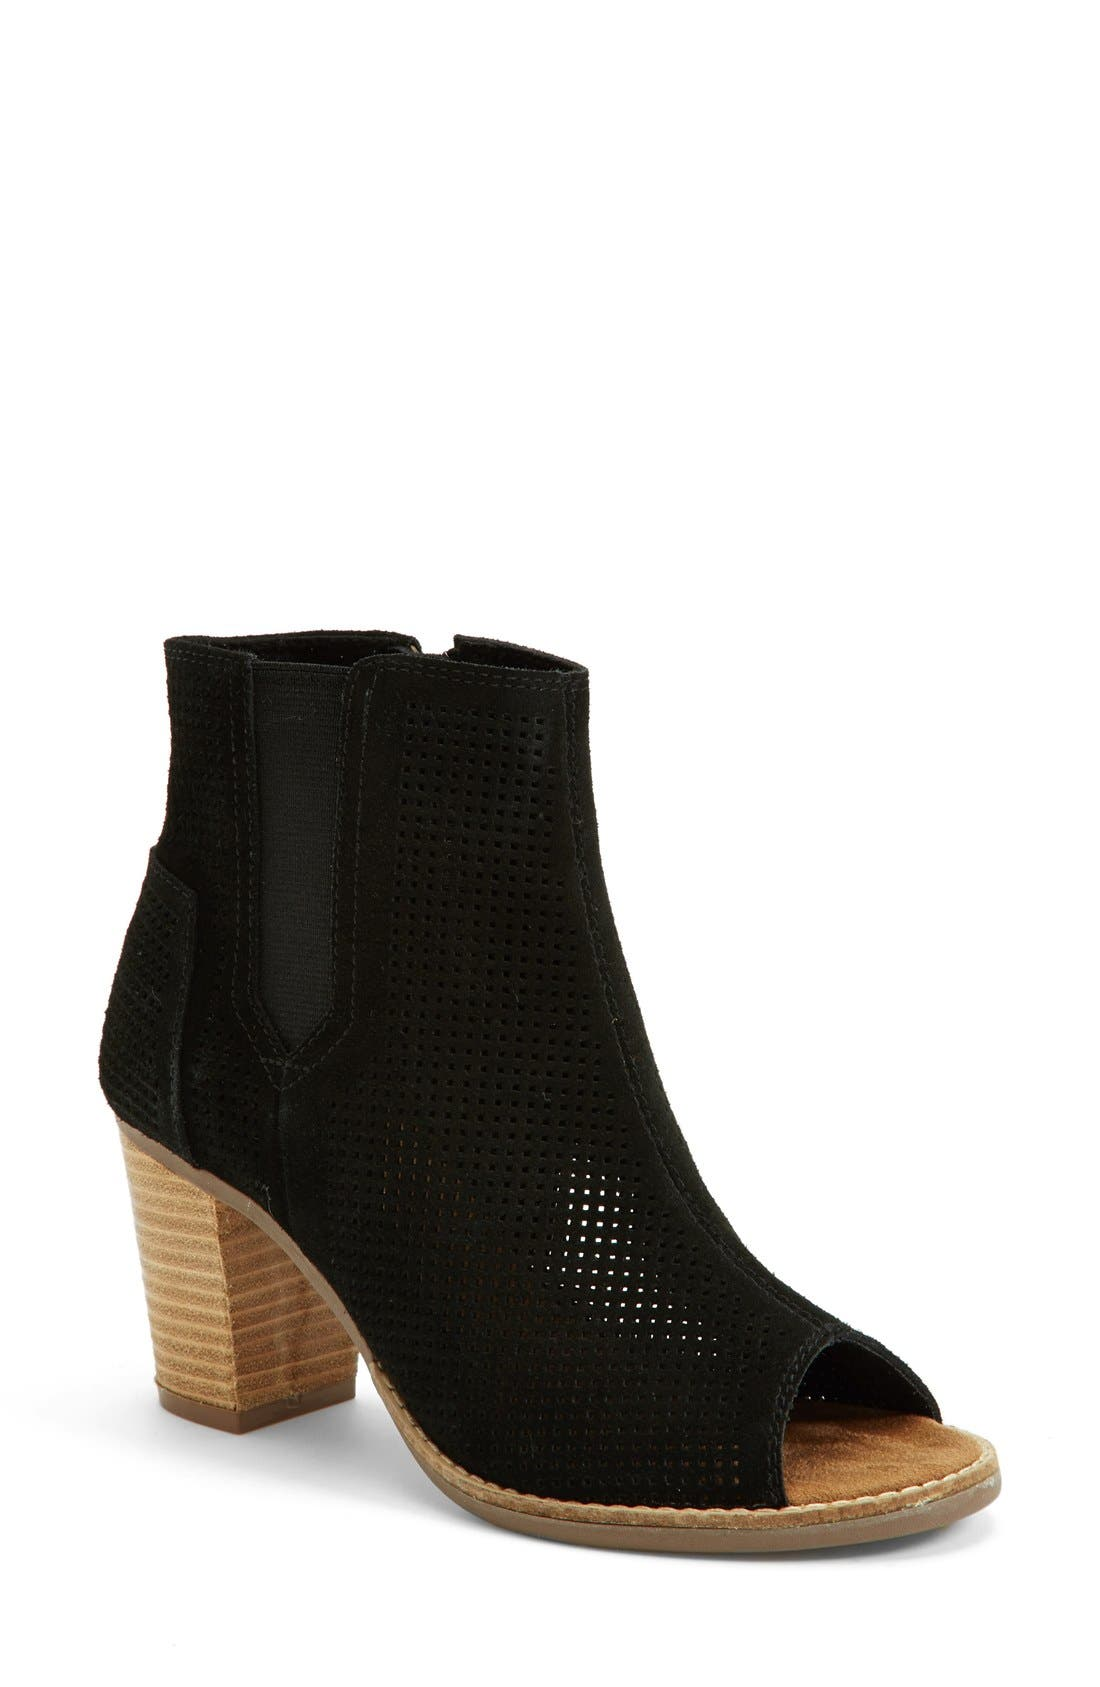 'Majorca' Suede Bootie,                         Main,                         color, 001